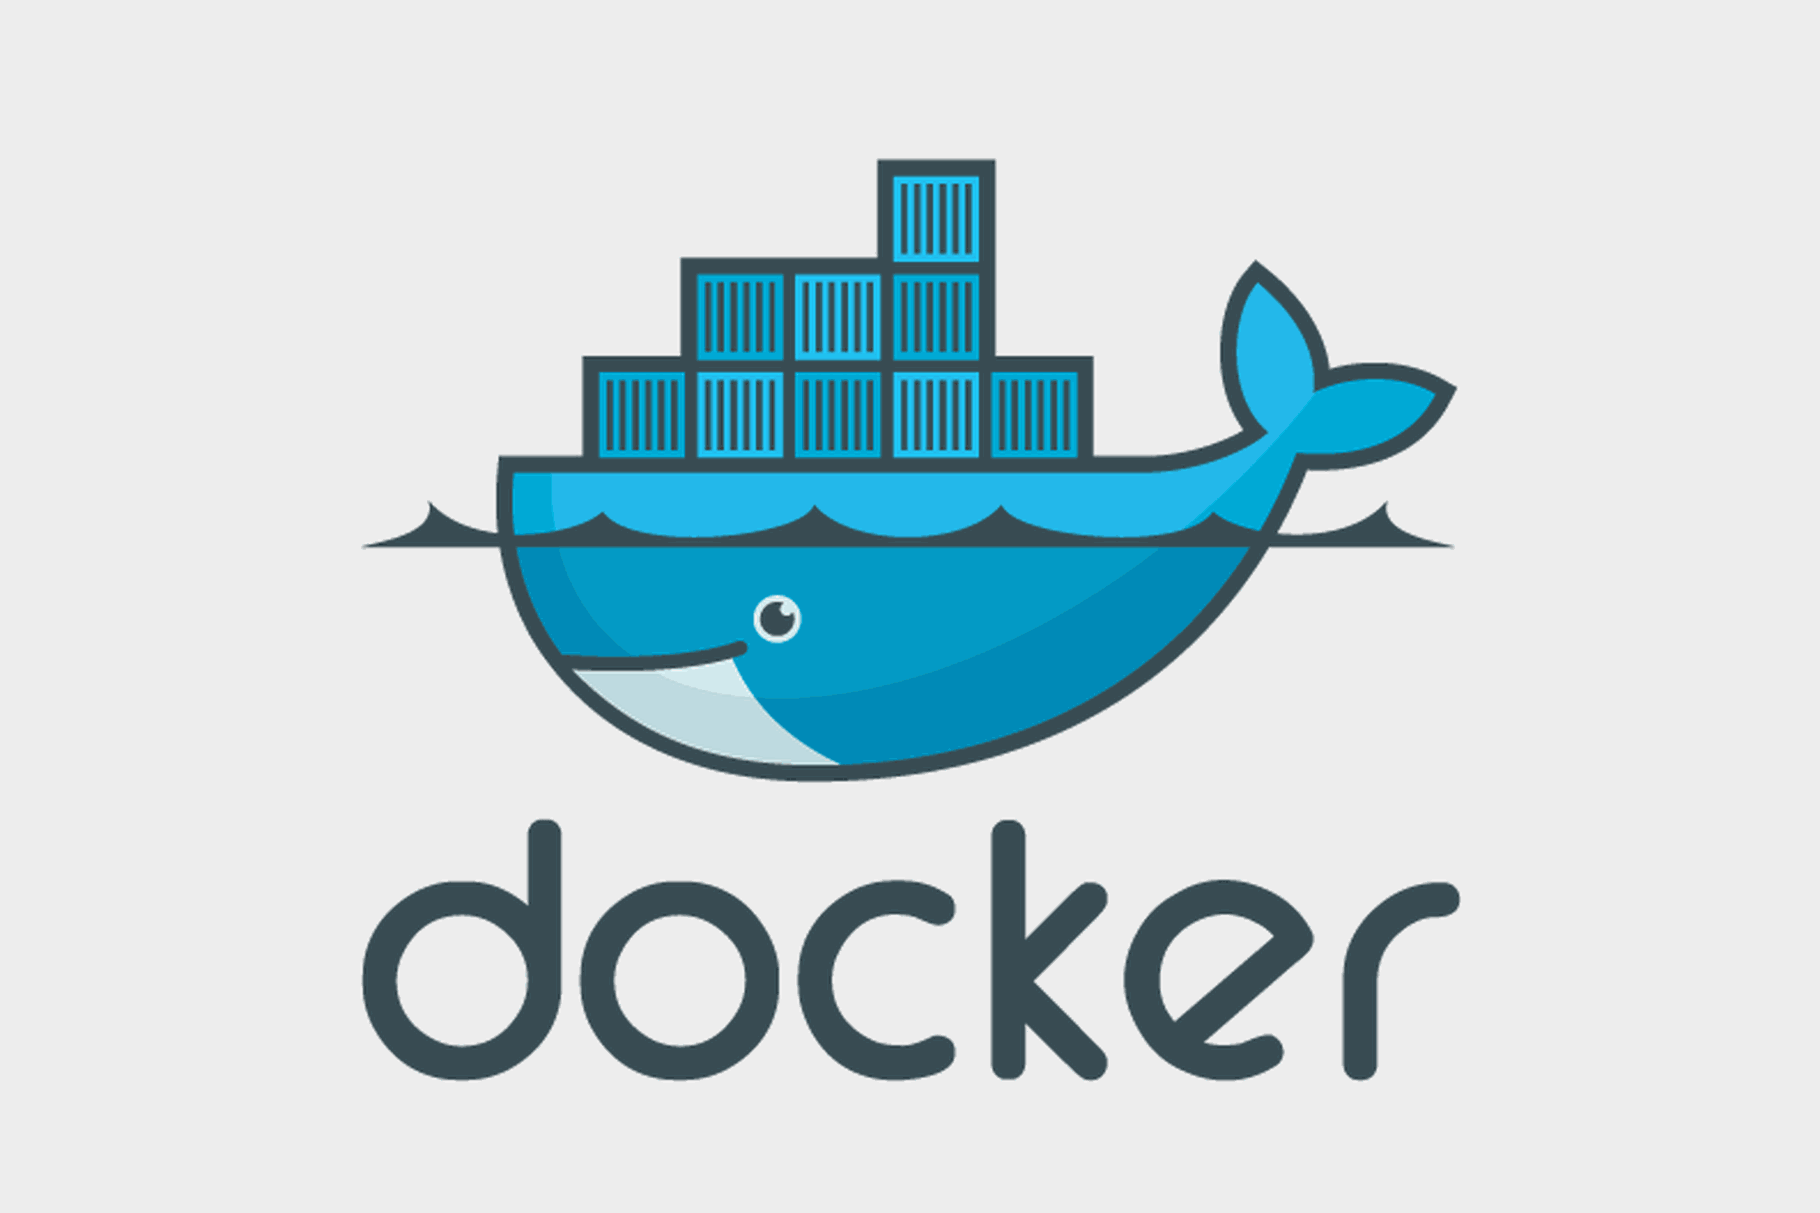 The story of our investment in Docker (via Unikernel Systems) -- and why enterprises are running their business on their commercial platform